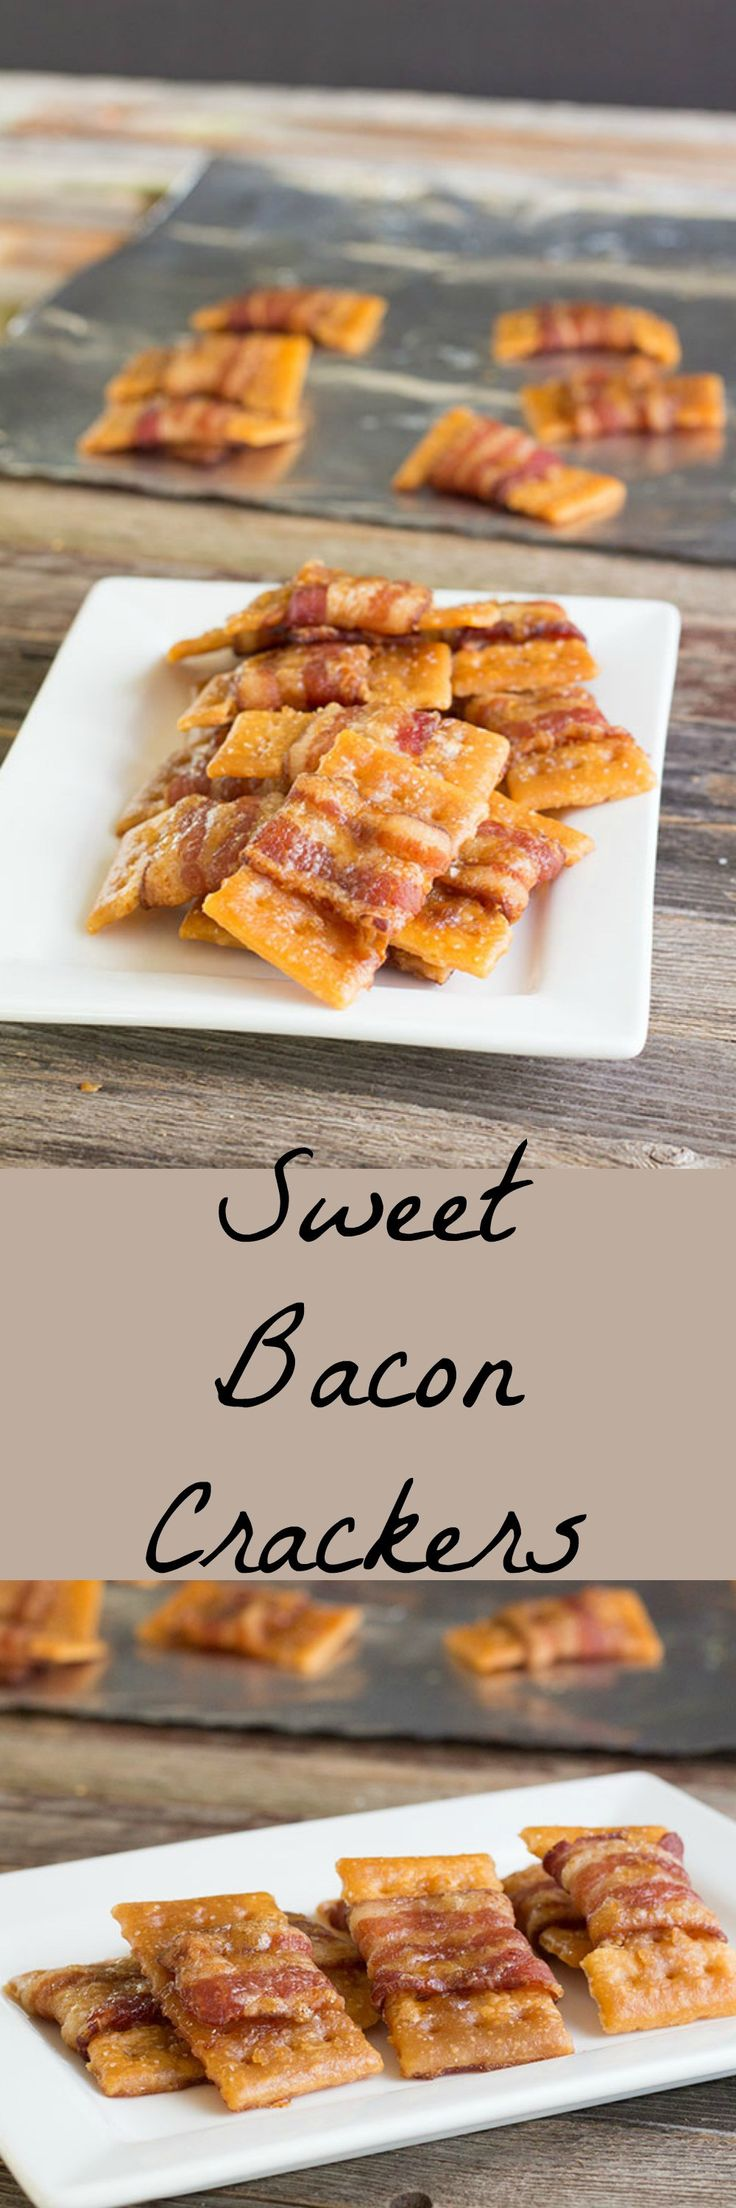 Bacon wrapped crackers, sprinkled with brown sugar and baked to perfection are the perfect tailgate or party recipe. Sweet, salty, portable and addictive.